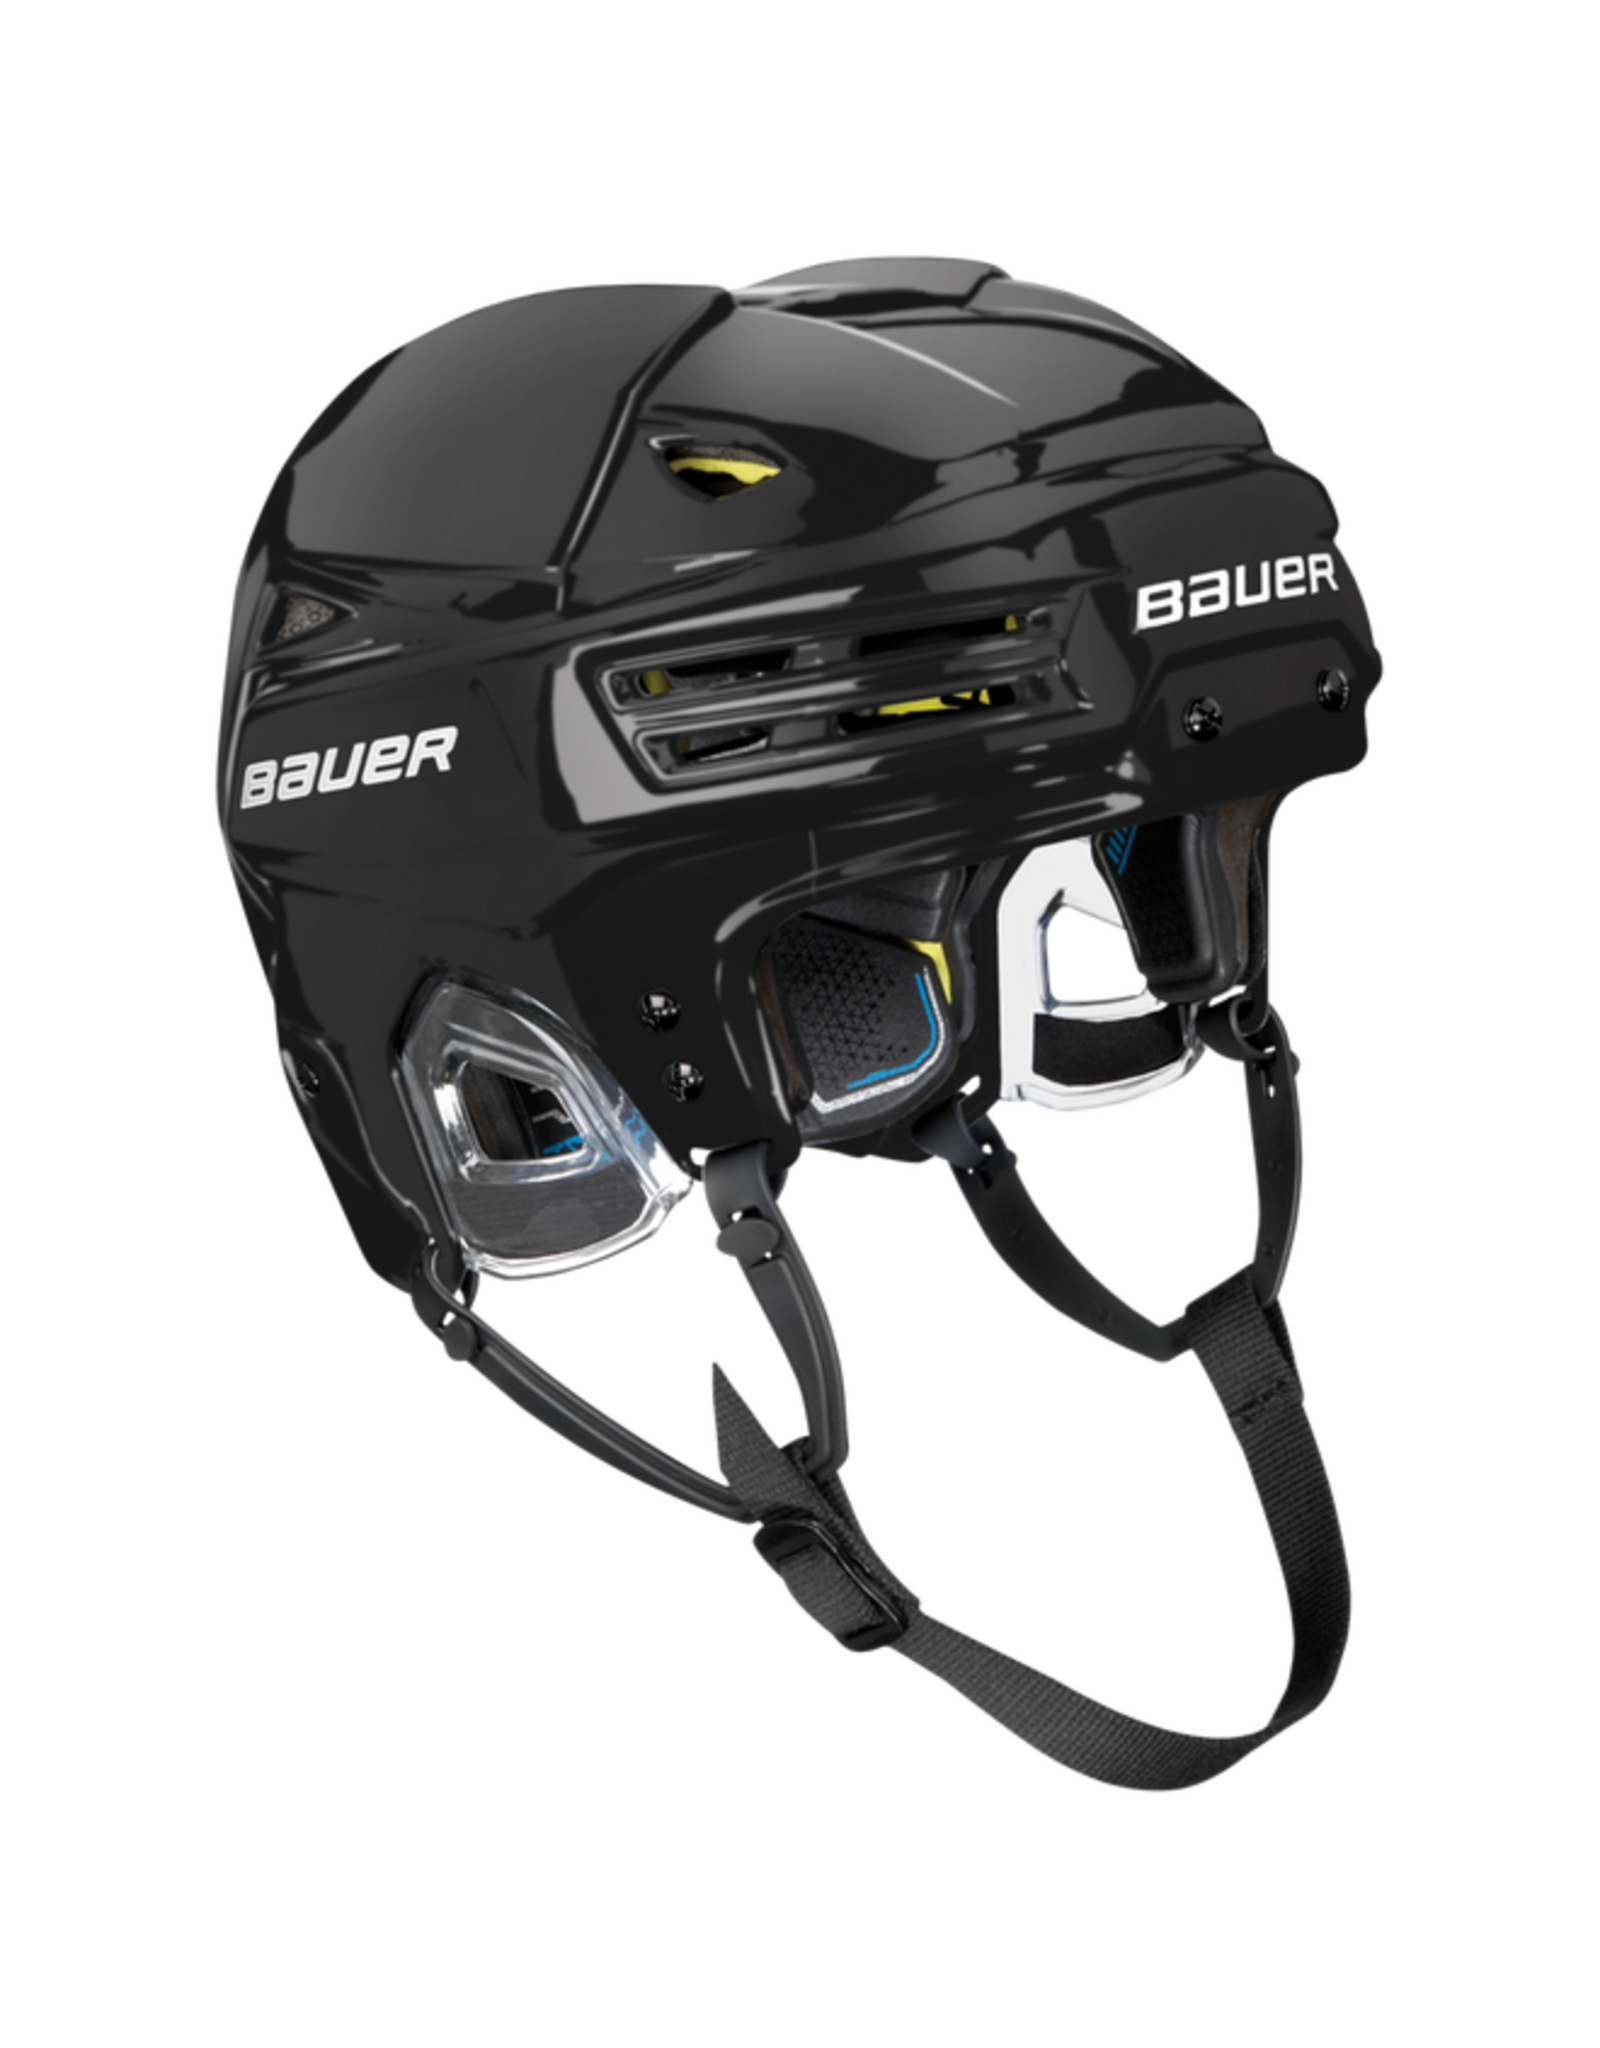 Bauer Hockey - Canada BAUER RE AKT 200 HELMET